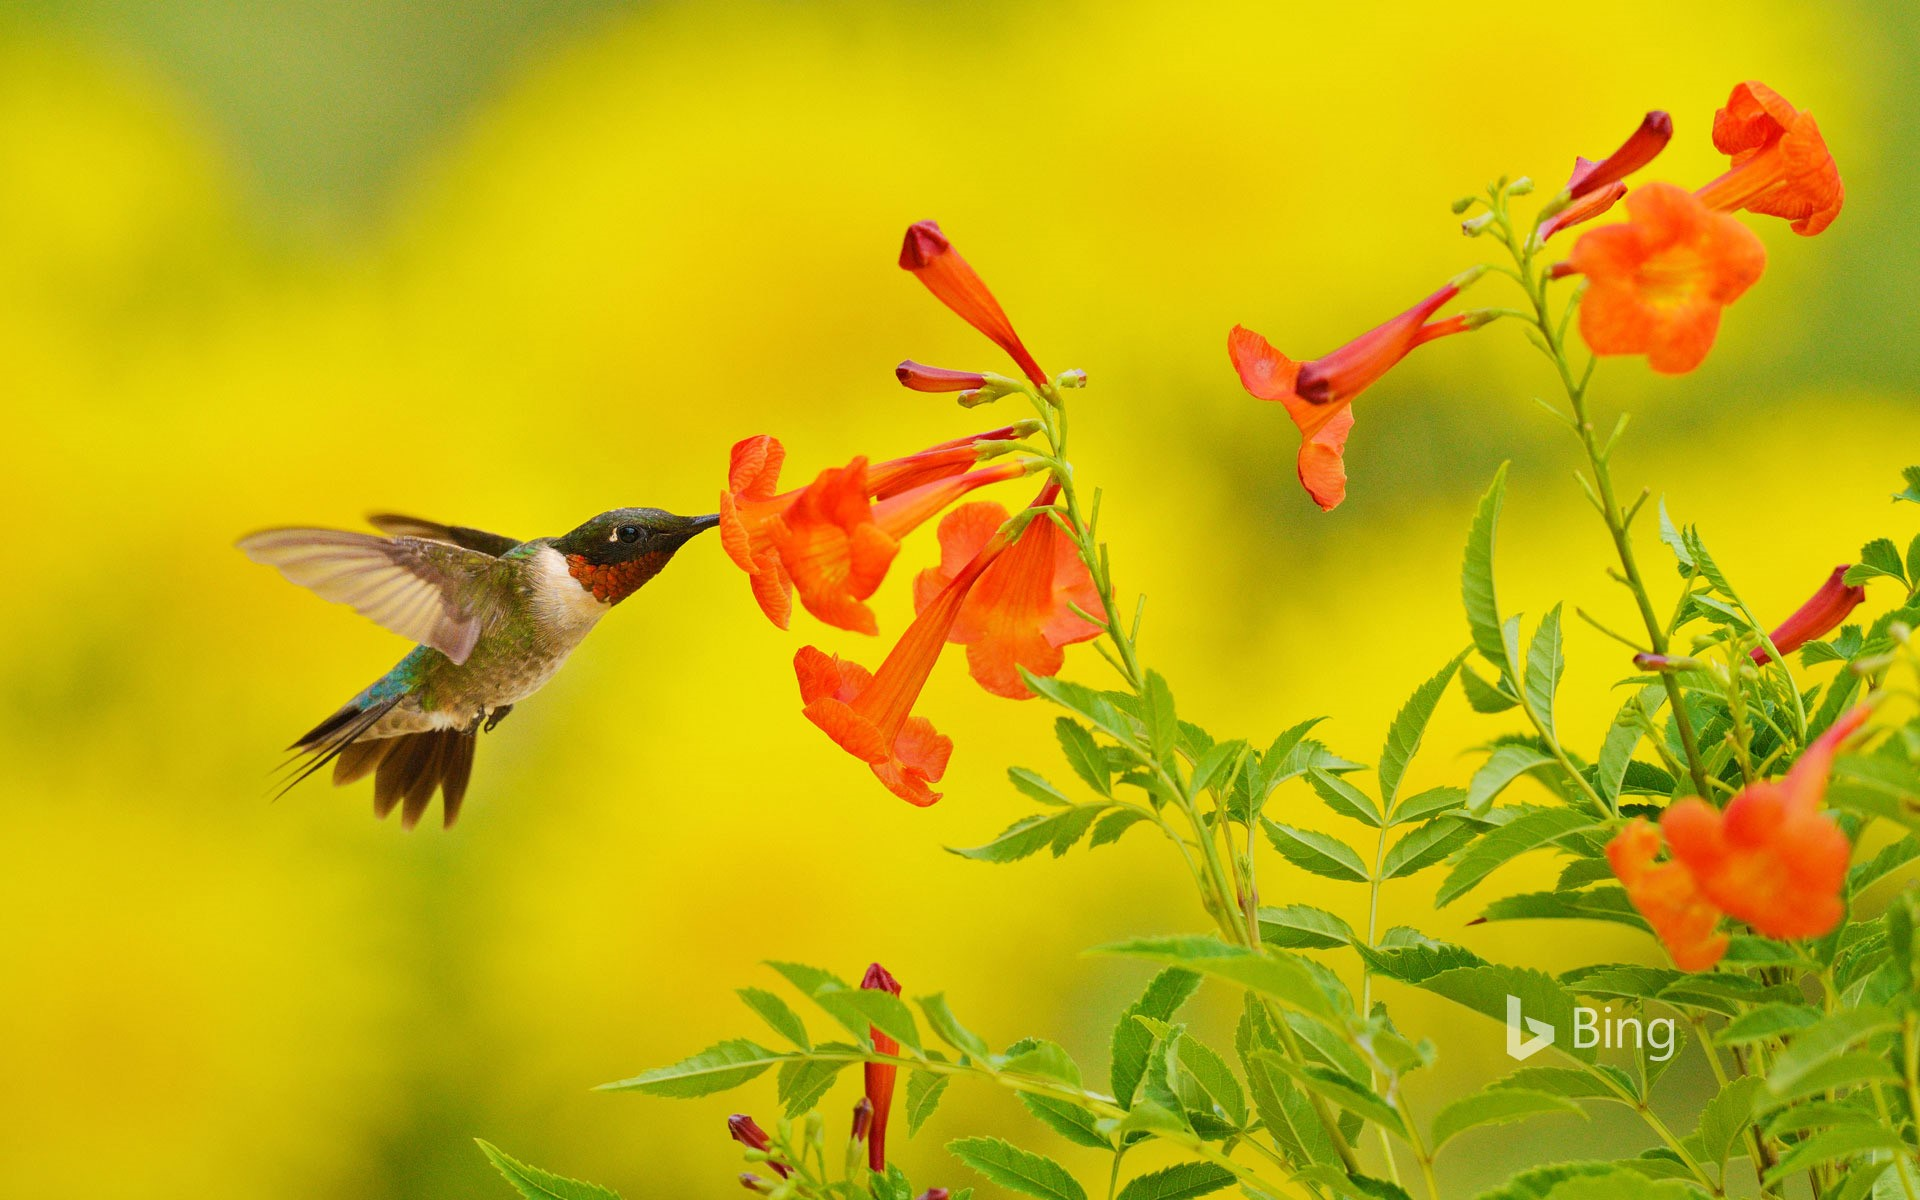 Ruby-throated hummingbird feeding on yellow bell flowers in the Texas Hill Country